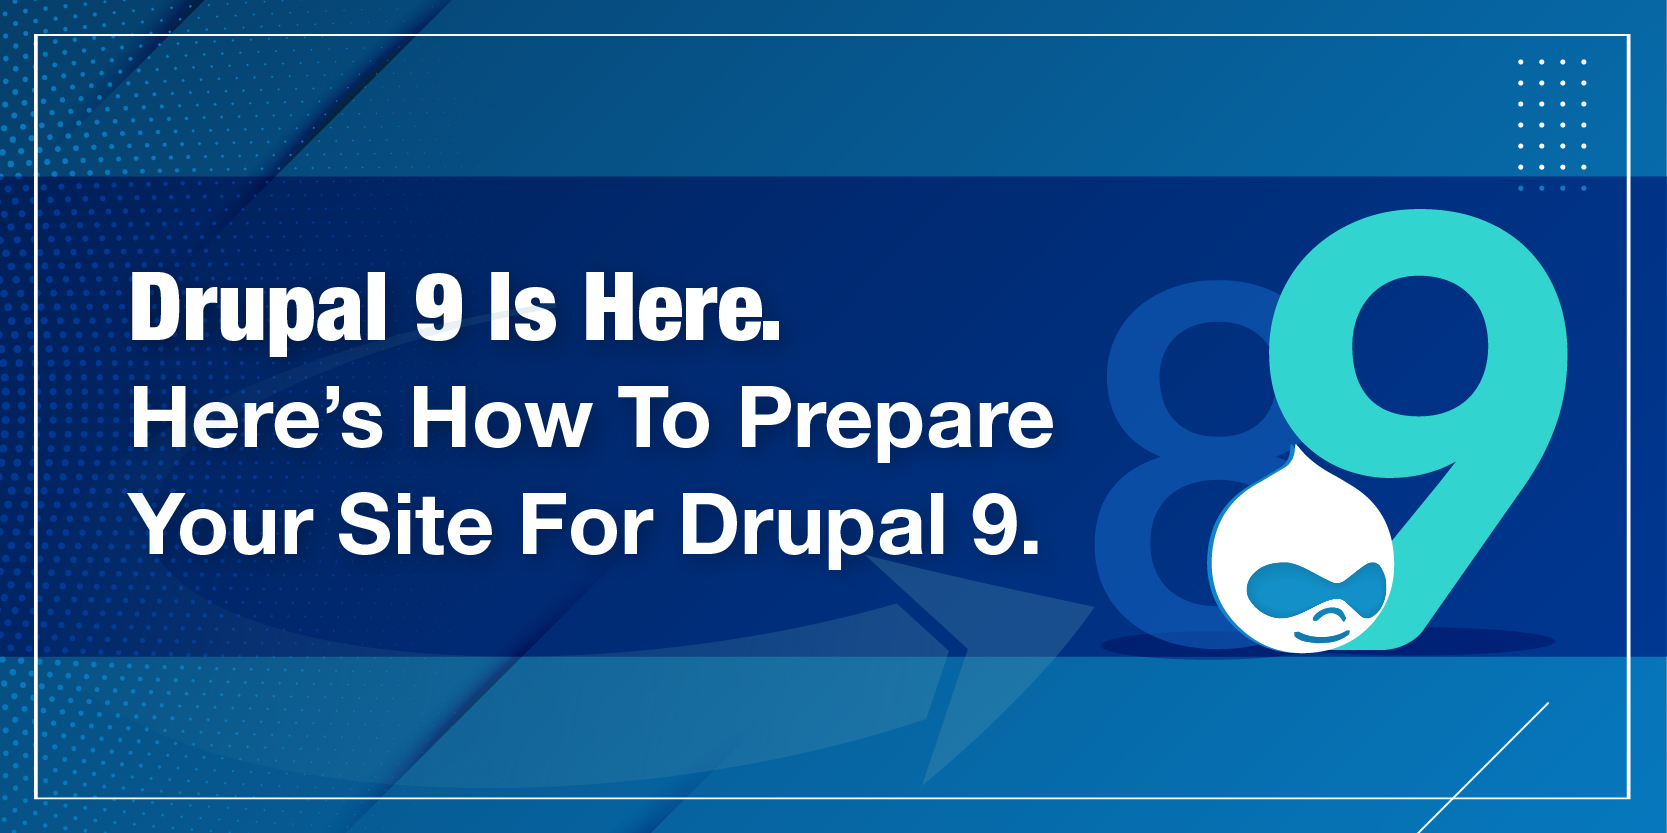 Drupal 9 Is Here. Here's How To Prepare Your Site For Drupal 9